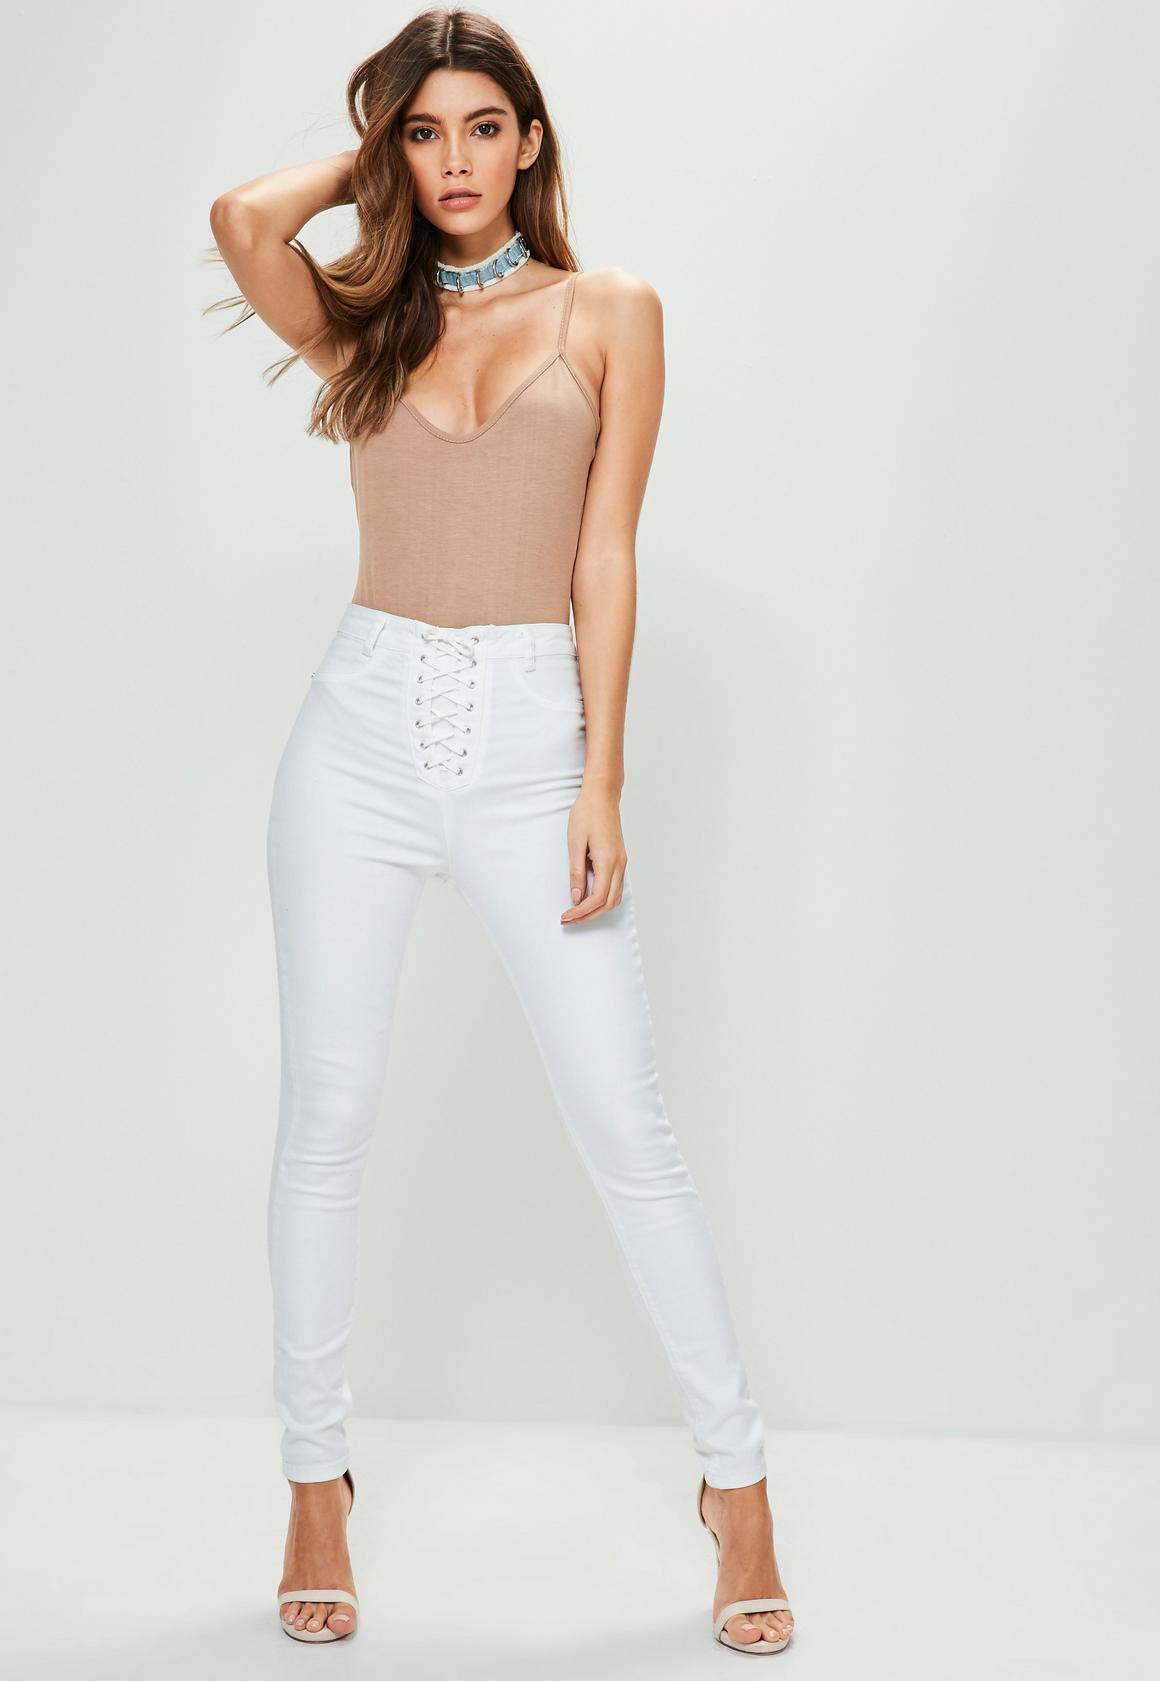 White Vice High Waisted Lace Up Skinny Jeans | Missguided